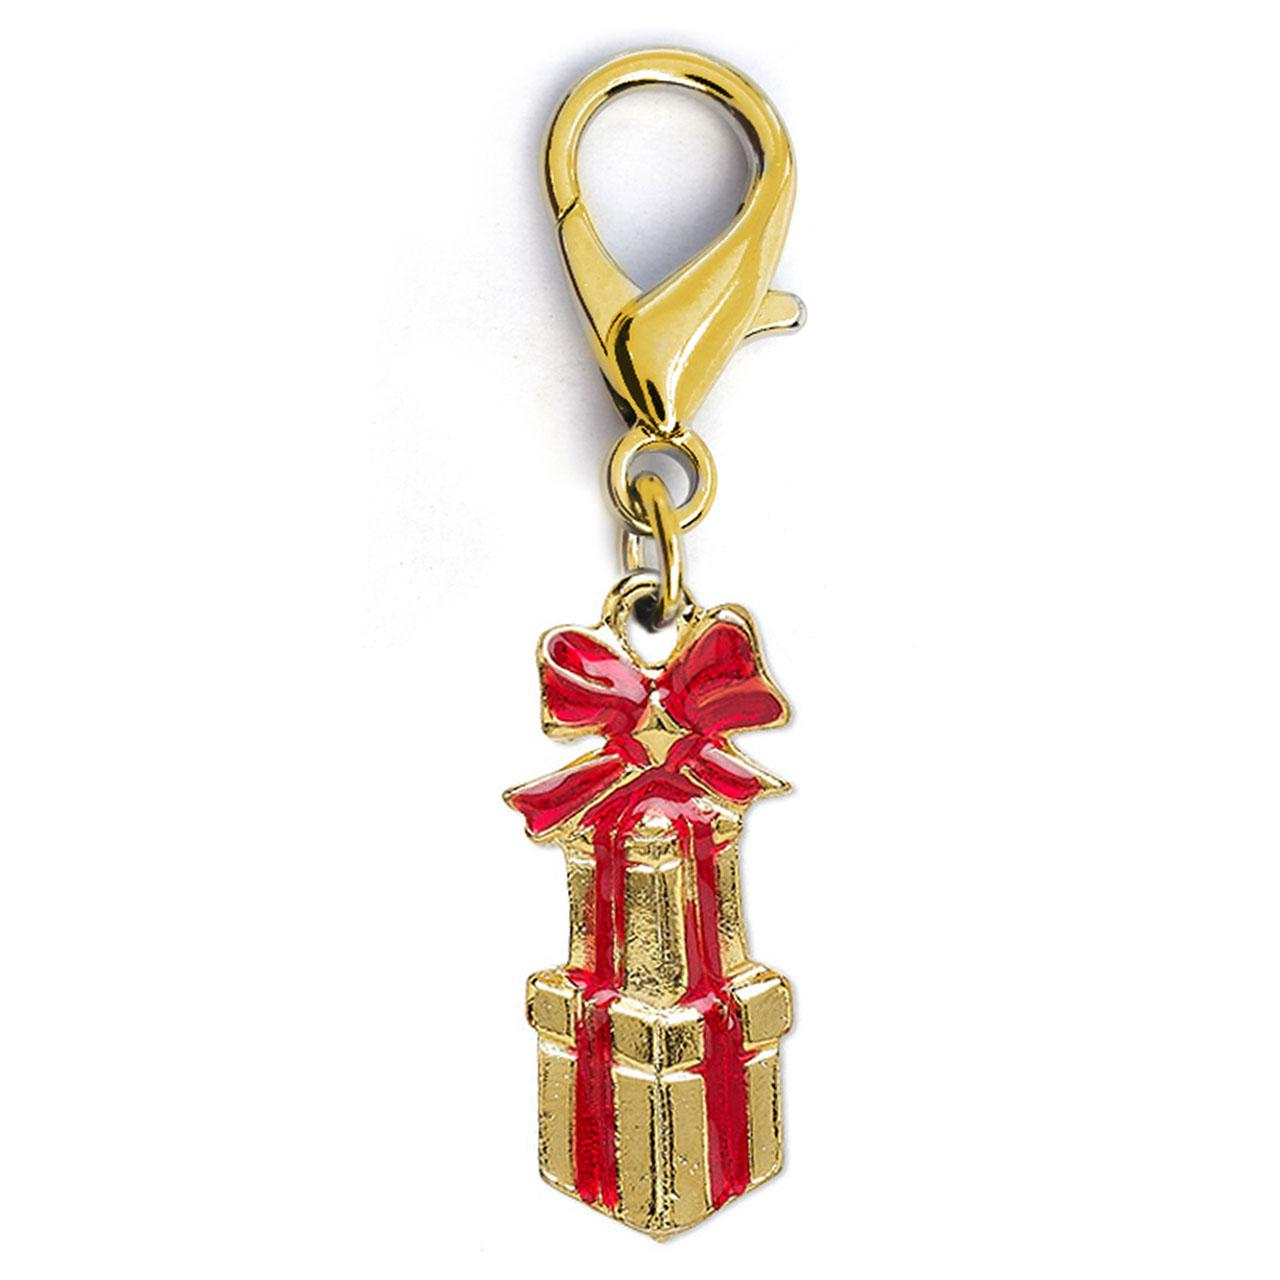 Christmas Presents Dog Collar Charm by Diva Dog - Gold